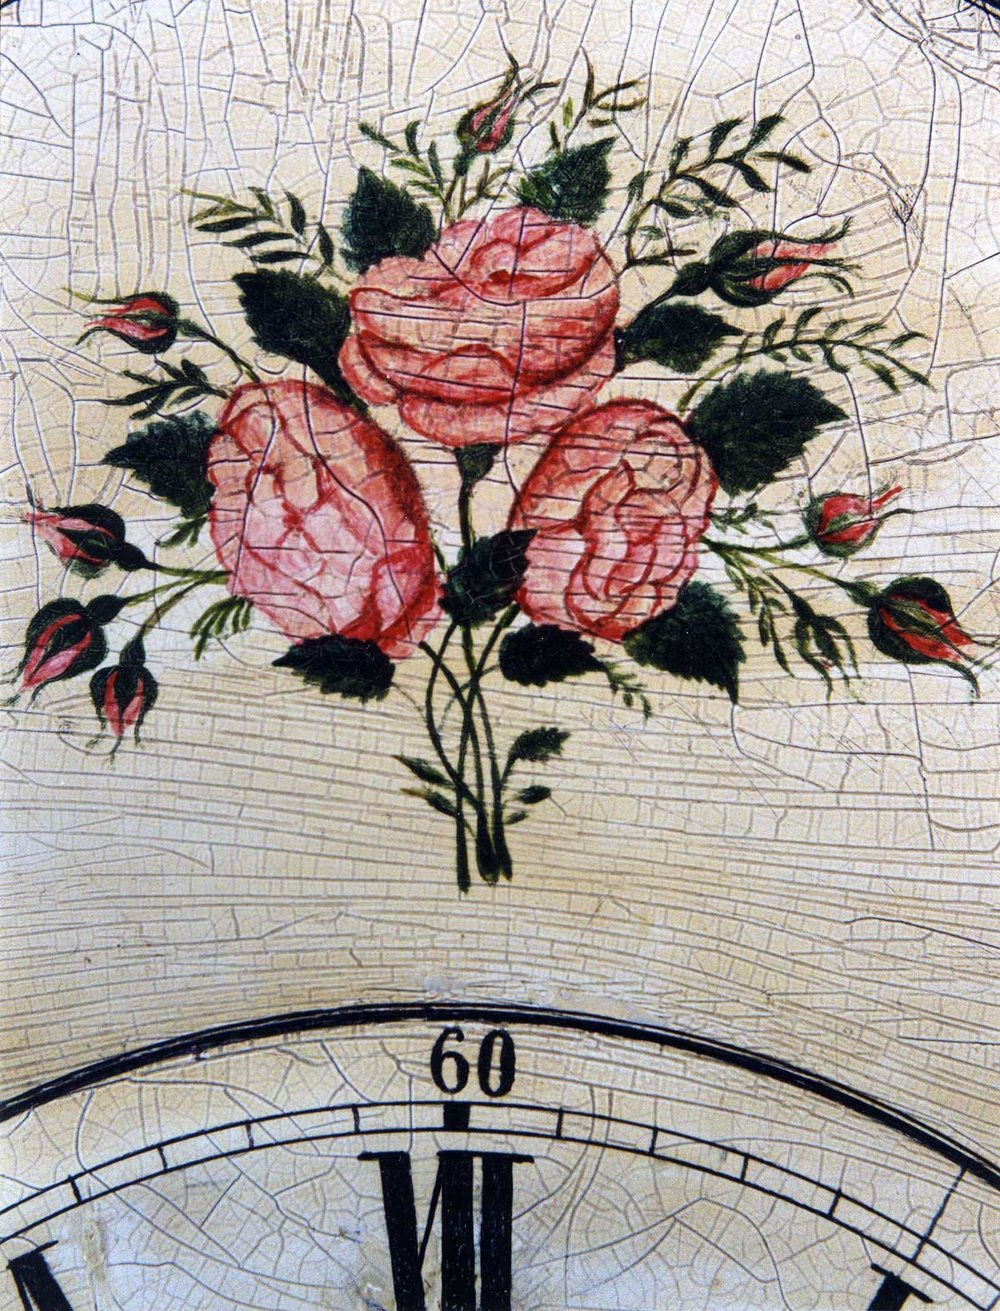 Detail of a hand-painted Kroeger Clock  made ca. 1889. Background photo: A Kroeger Clock made in 1910 shows a decal applied as decoration.